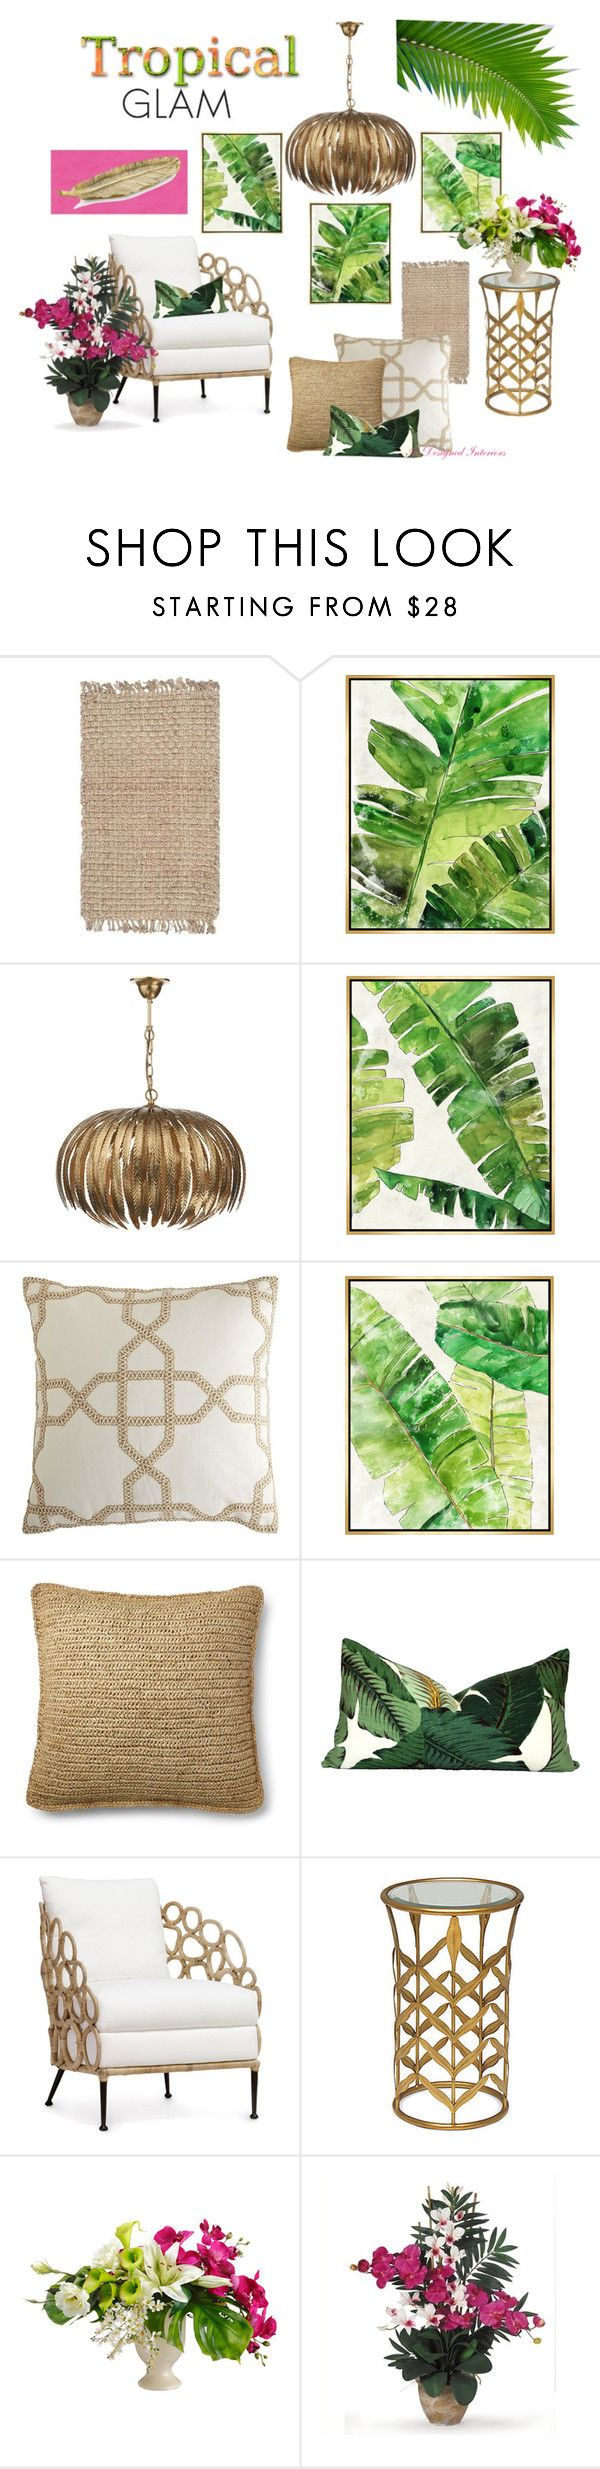 best 25+ tropical home decor ideas on pinterest | tropical homes